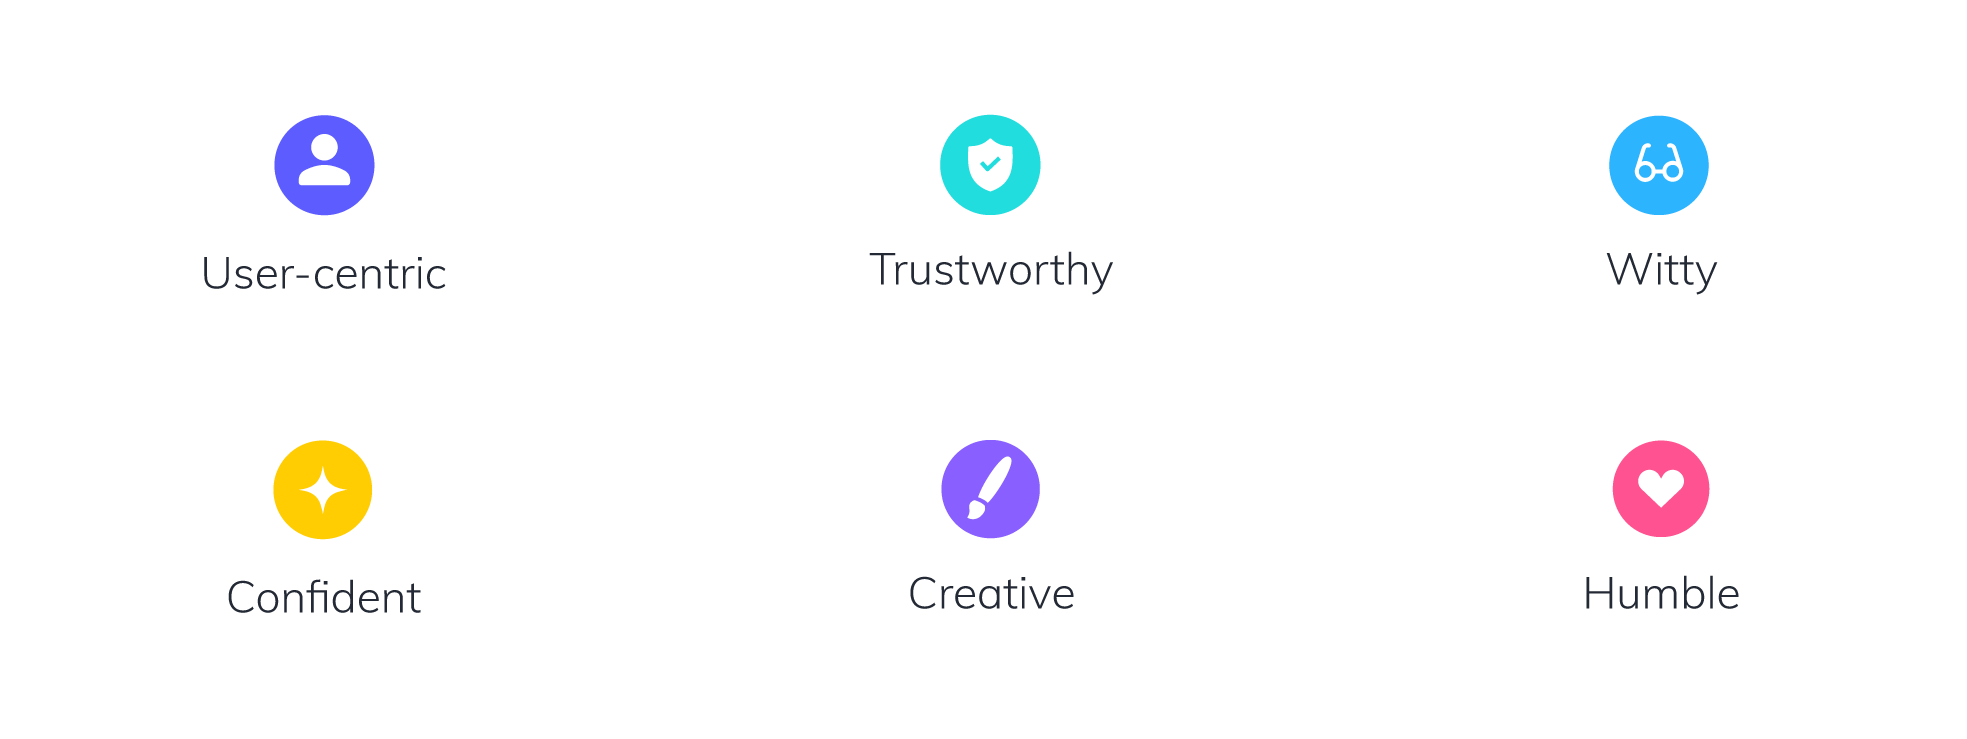 Our 6 brand attributes are depicted through colorful icons. We are user-centric, trustworthy, witty, confident, creative, and humble.